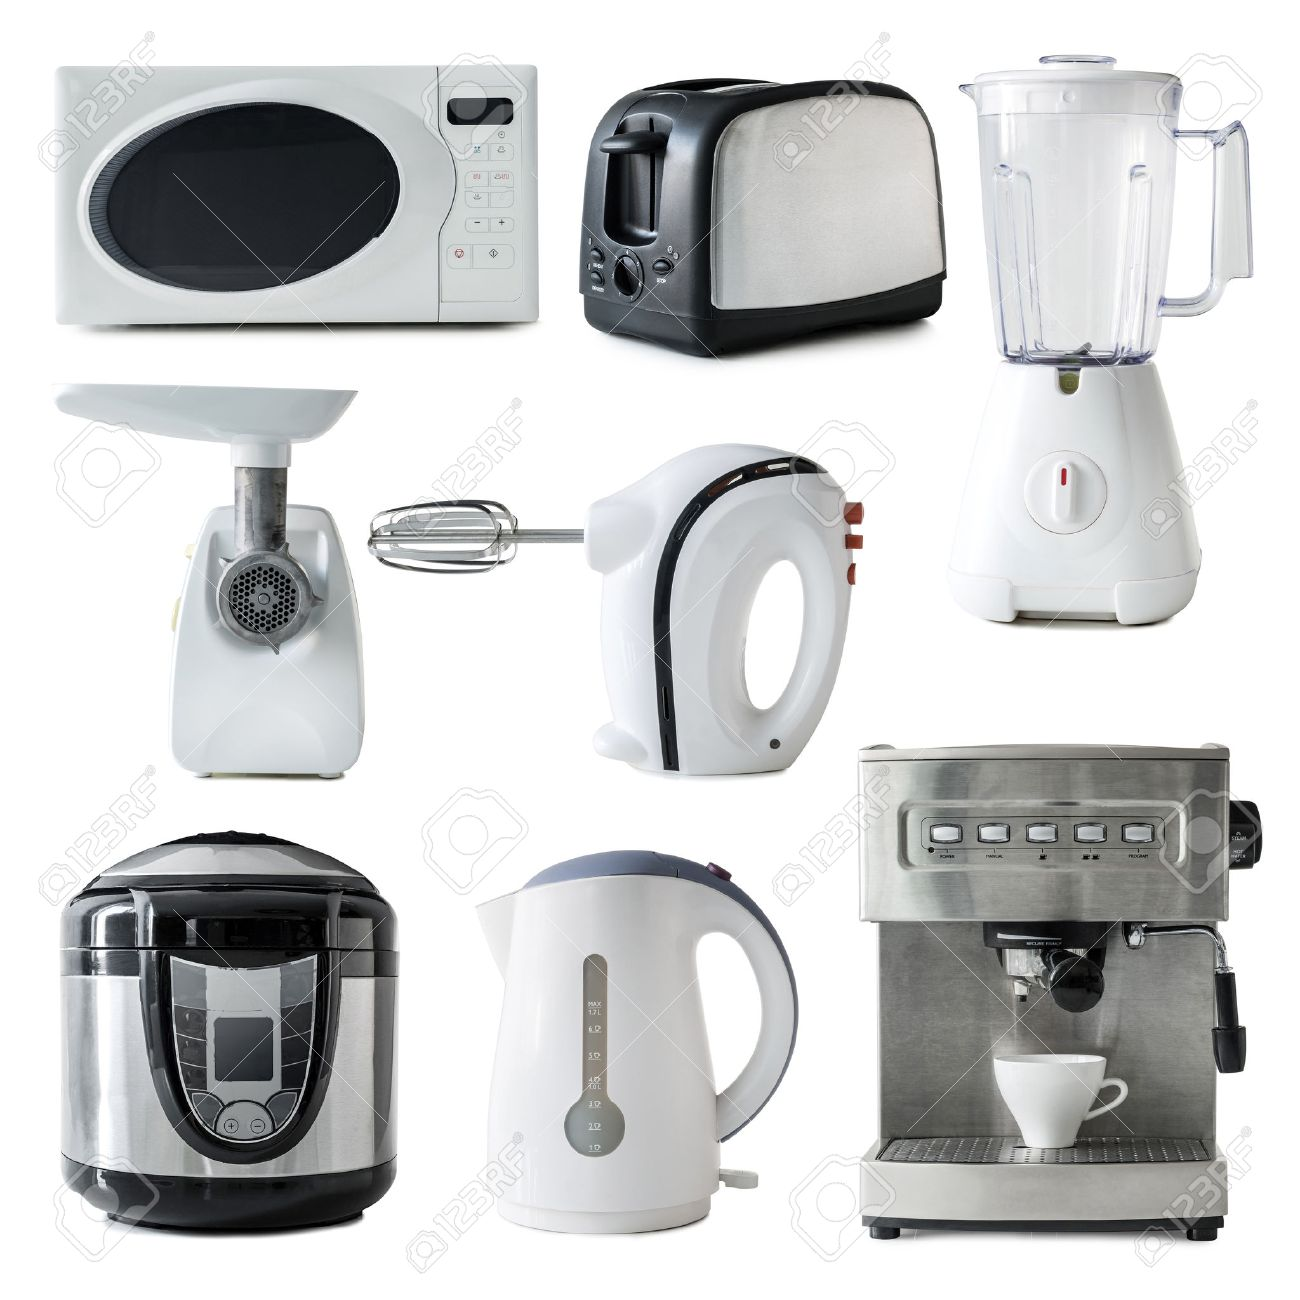 collage of different types of kitchen appliances isolated on white background - 50031799